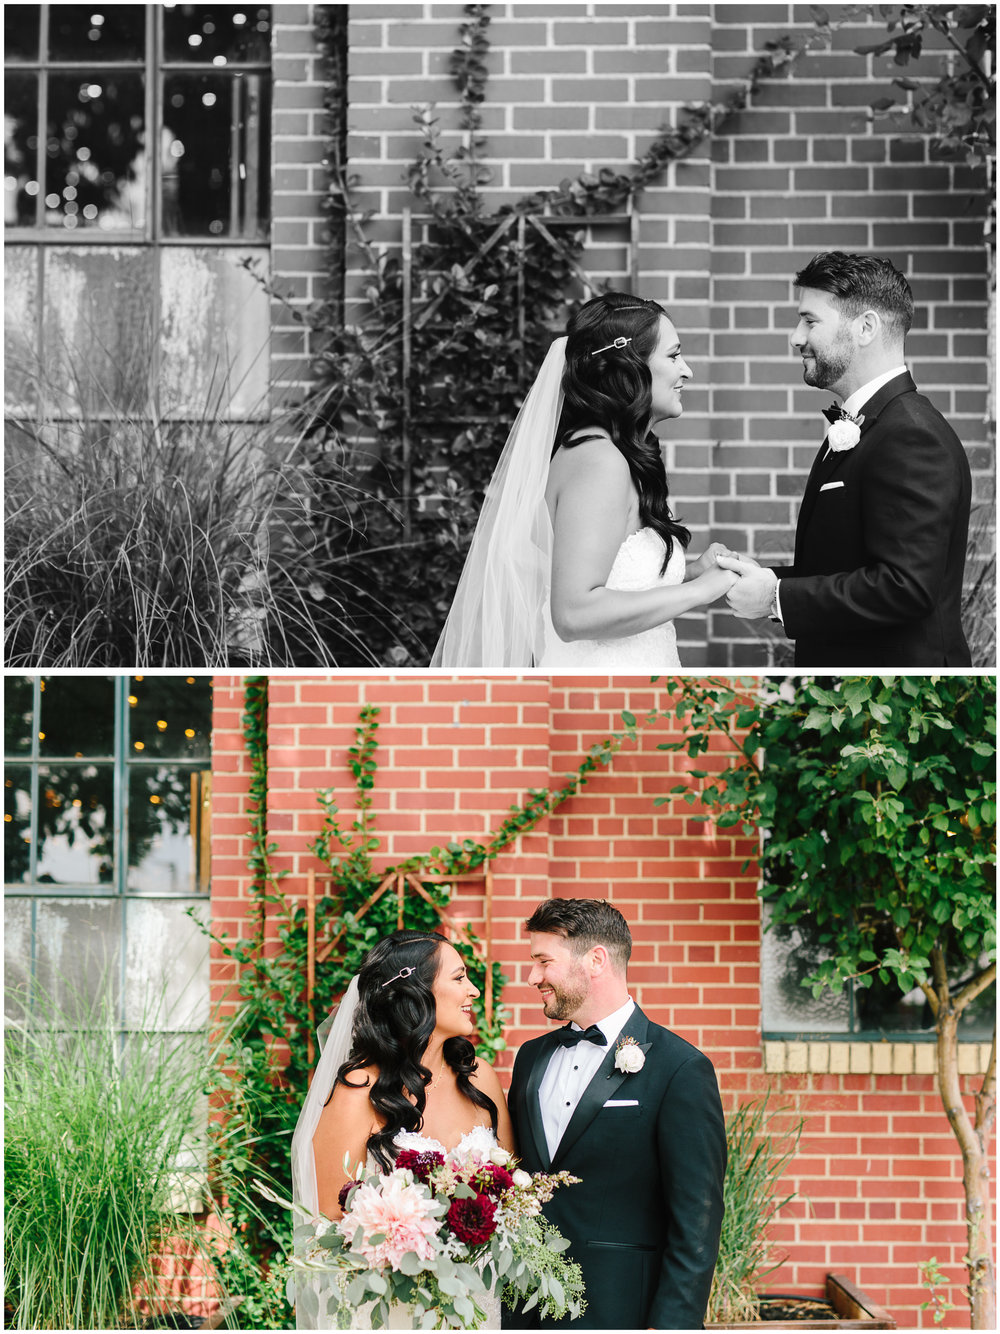 moss_denver_wedding_20.jpg